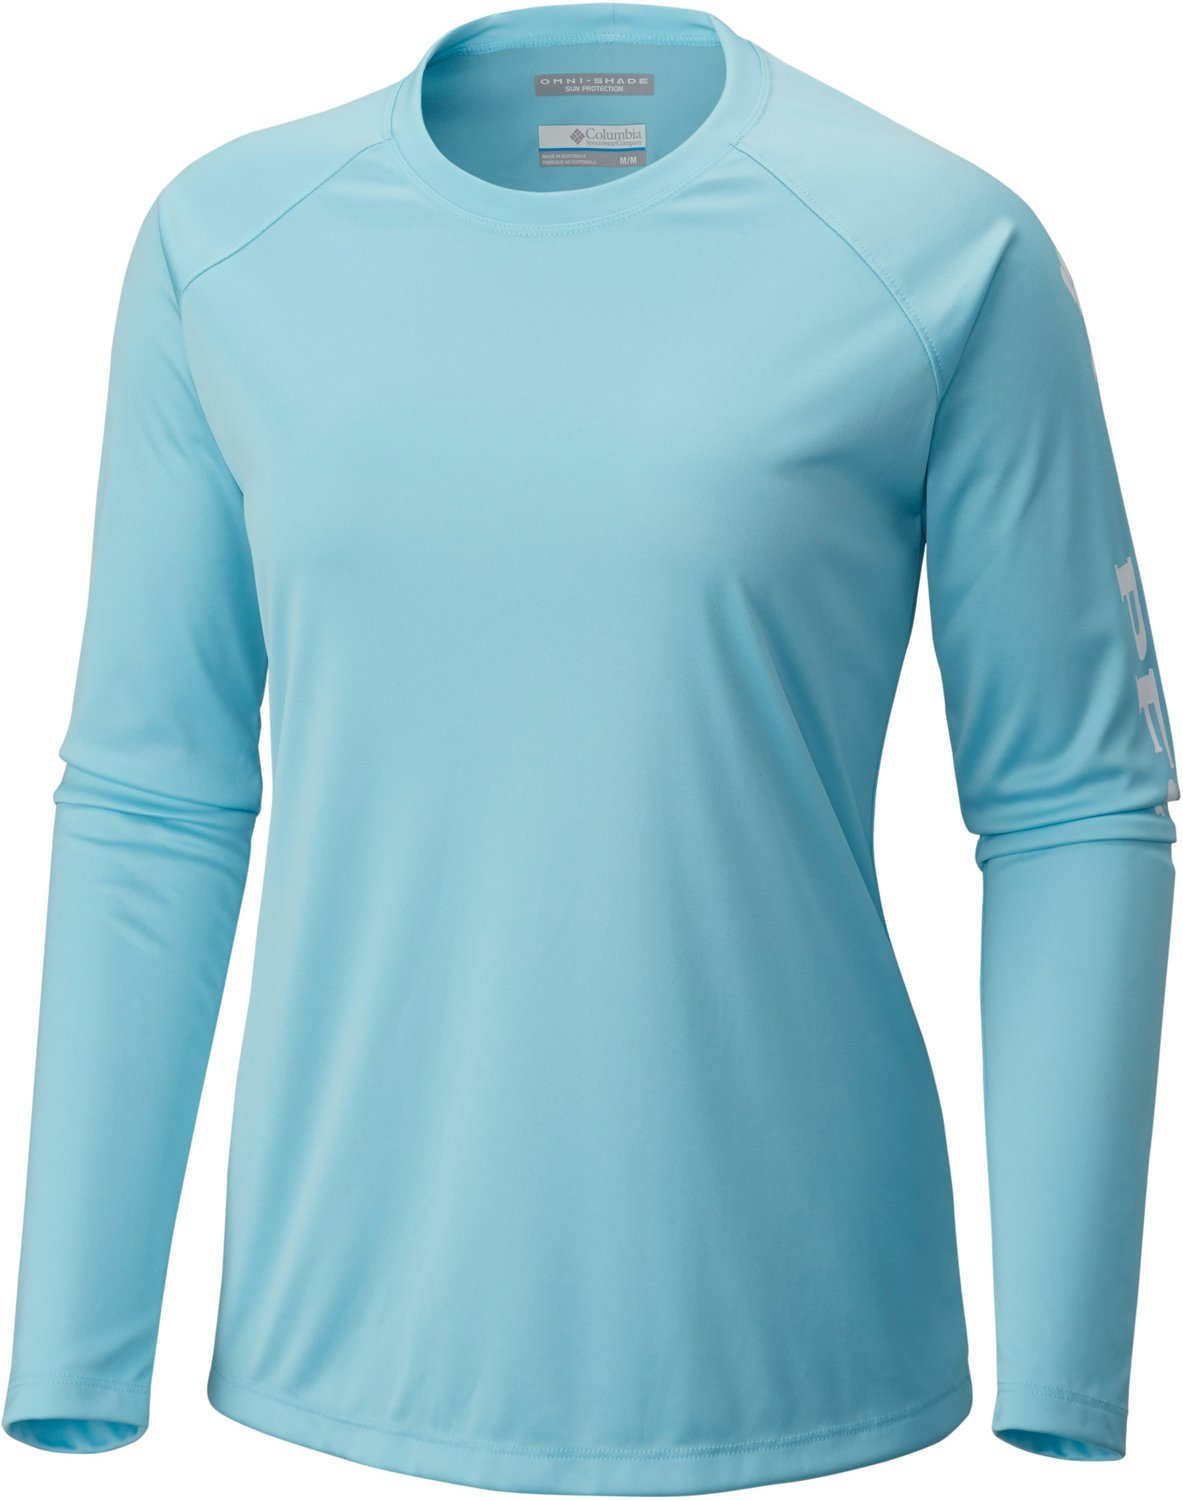 b12160f34a6c Display product reviews for Columbia Sportswear Women's PFG Tidal Tee II  Plus Size Long Sleeve T